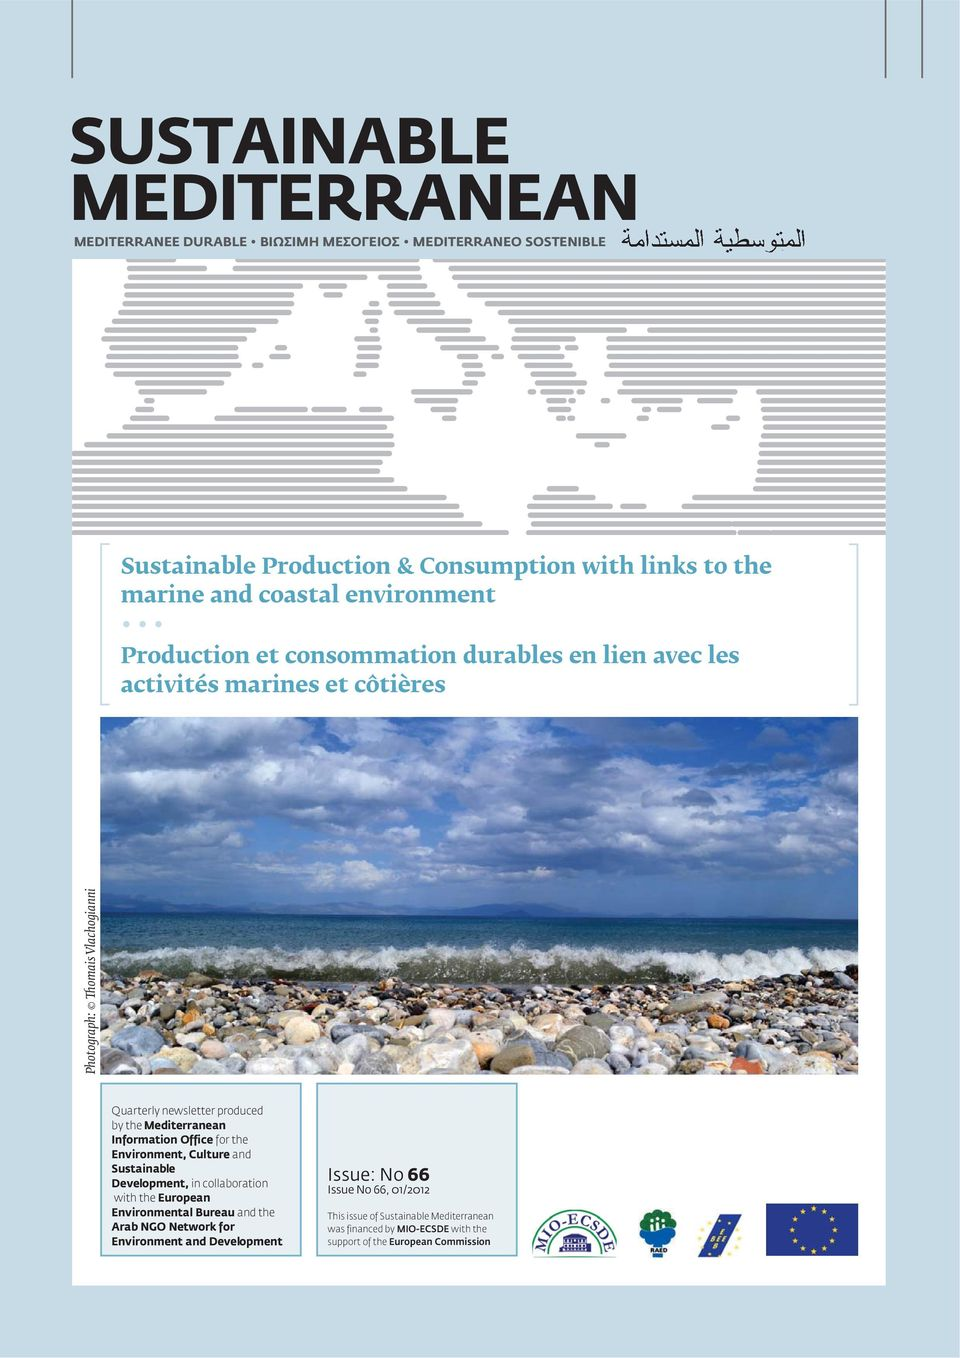 for the Environment, Culture and Sustai na ble Development, in collaboration with the European Environmental Bureau and the Arab NGO Network for